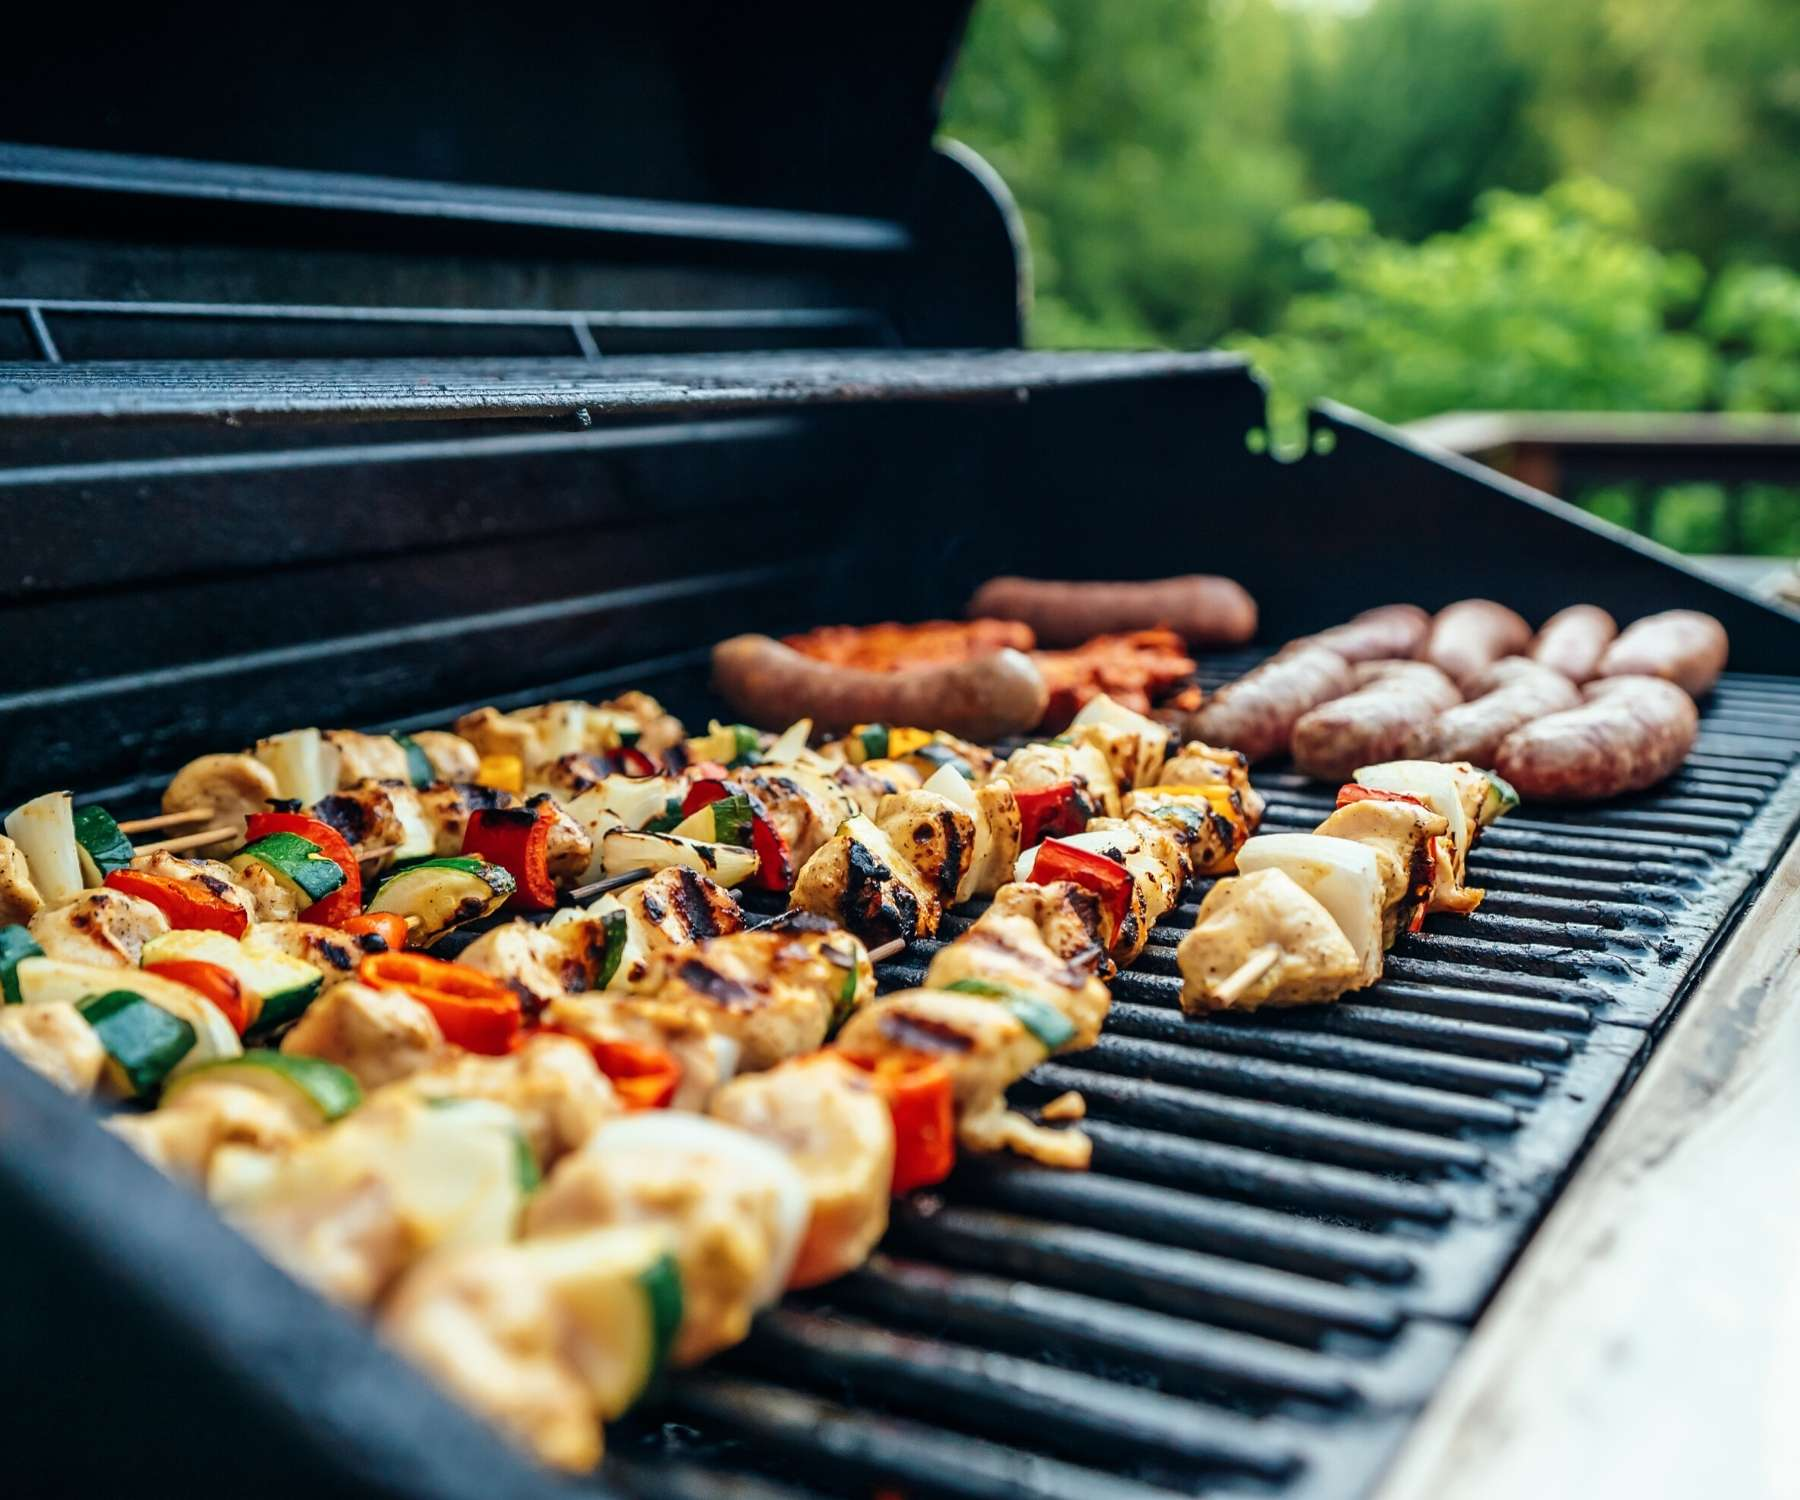 gas barbecue with food on the griddle